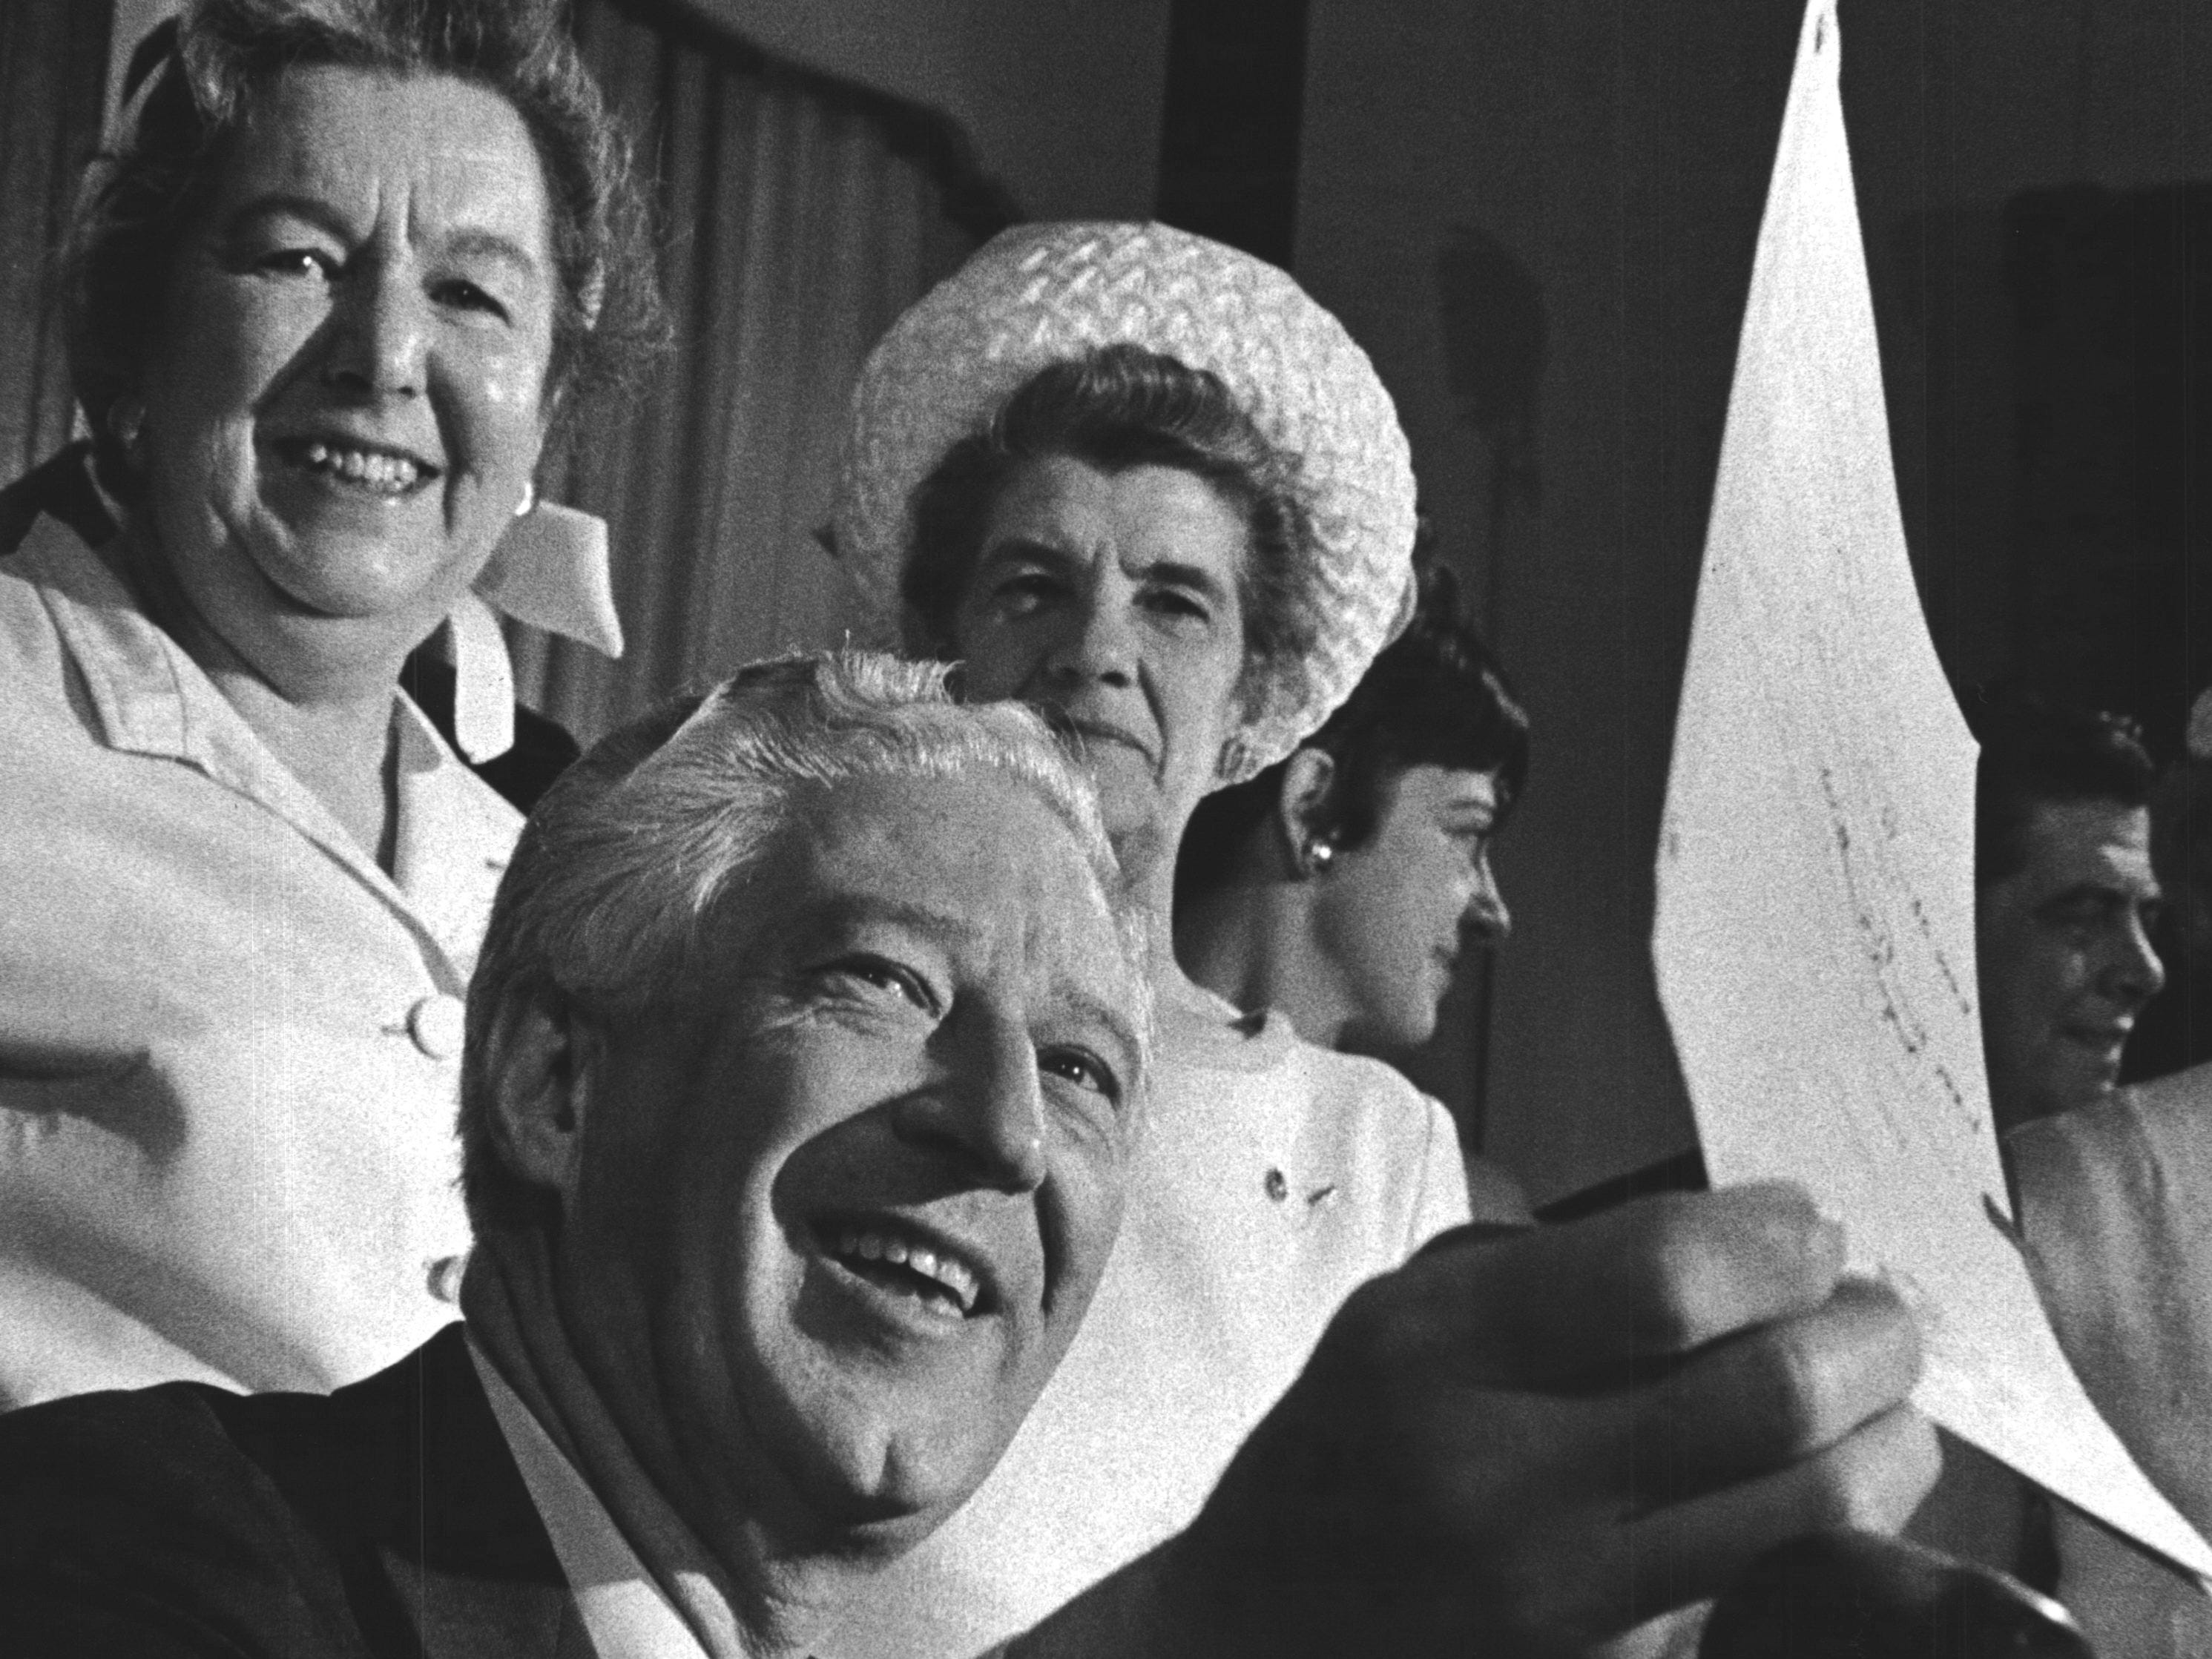 in 1967, a smiling Gov. Warren Knowles held up the signed bill repealing Wisconsin's 72-year-old ban on the sale of colored oleomargarine. Standing behind the governor during the ceremony in Madison were members of the Wisconsin Federation of Women's Clubs, which had long advocated the repeal of the oleo ban.